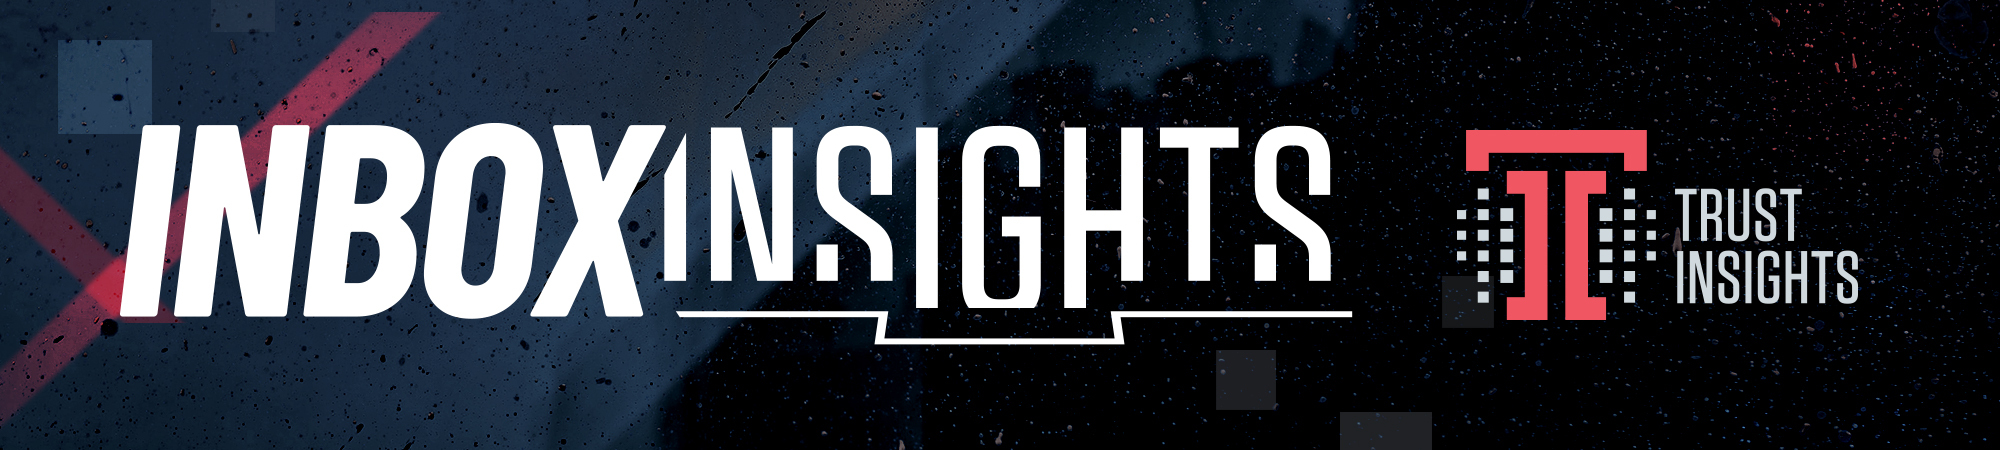 Inbox Insights from Trust Insights